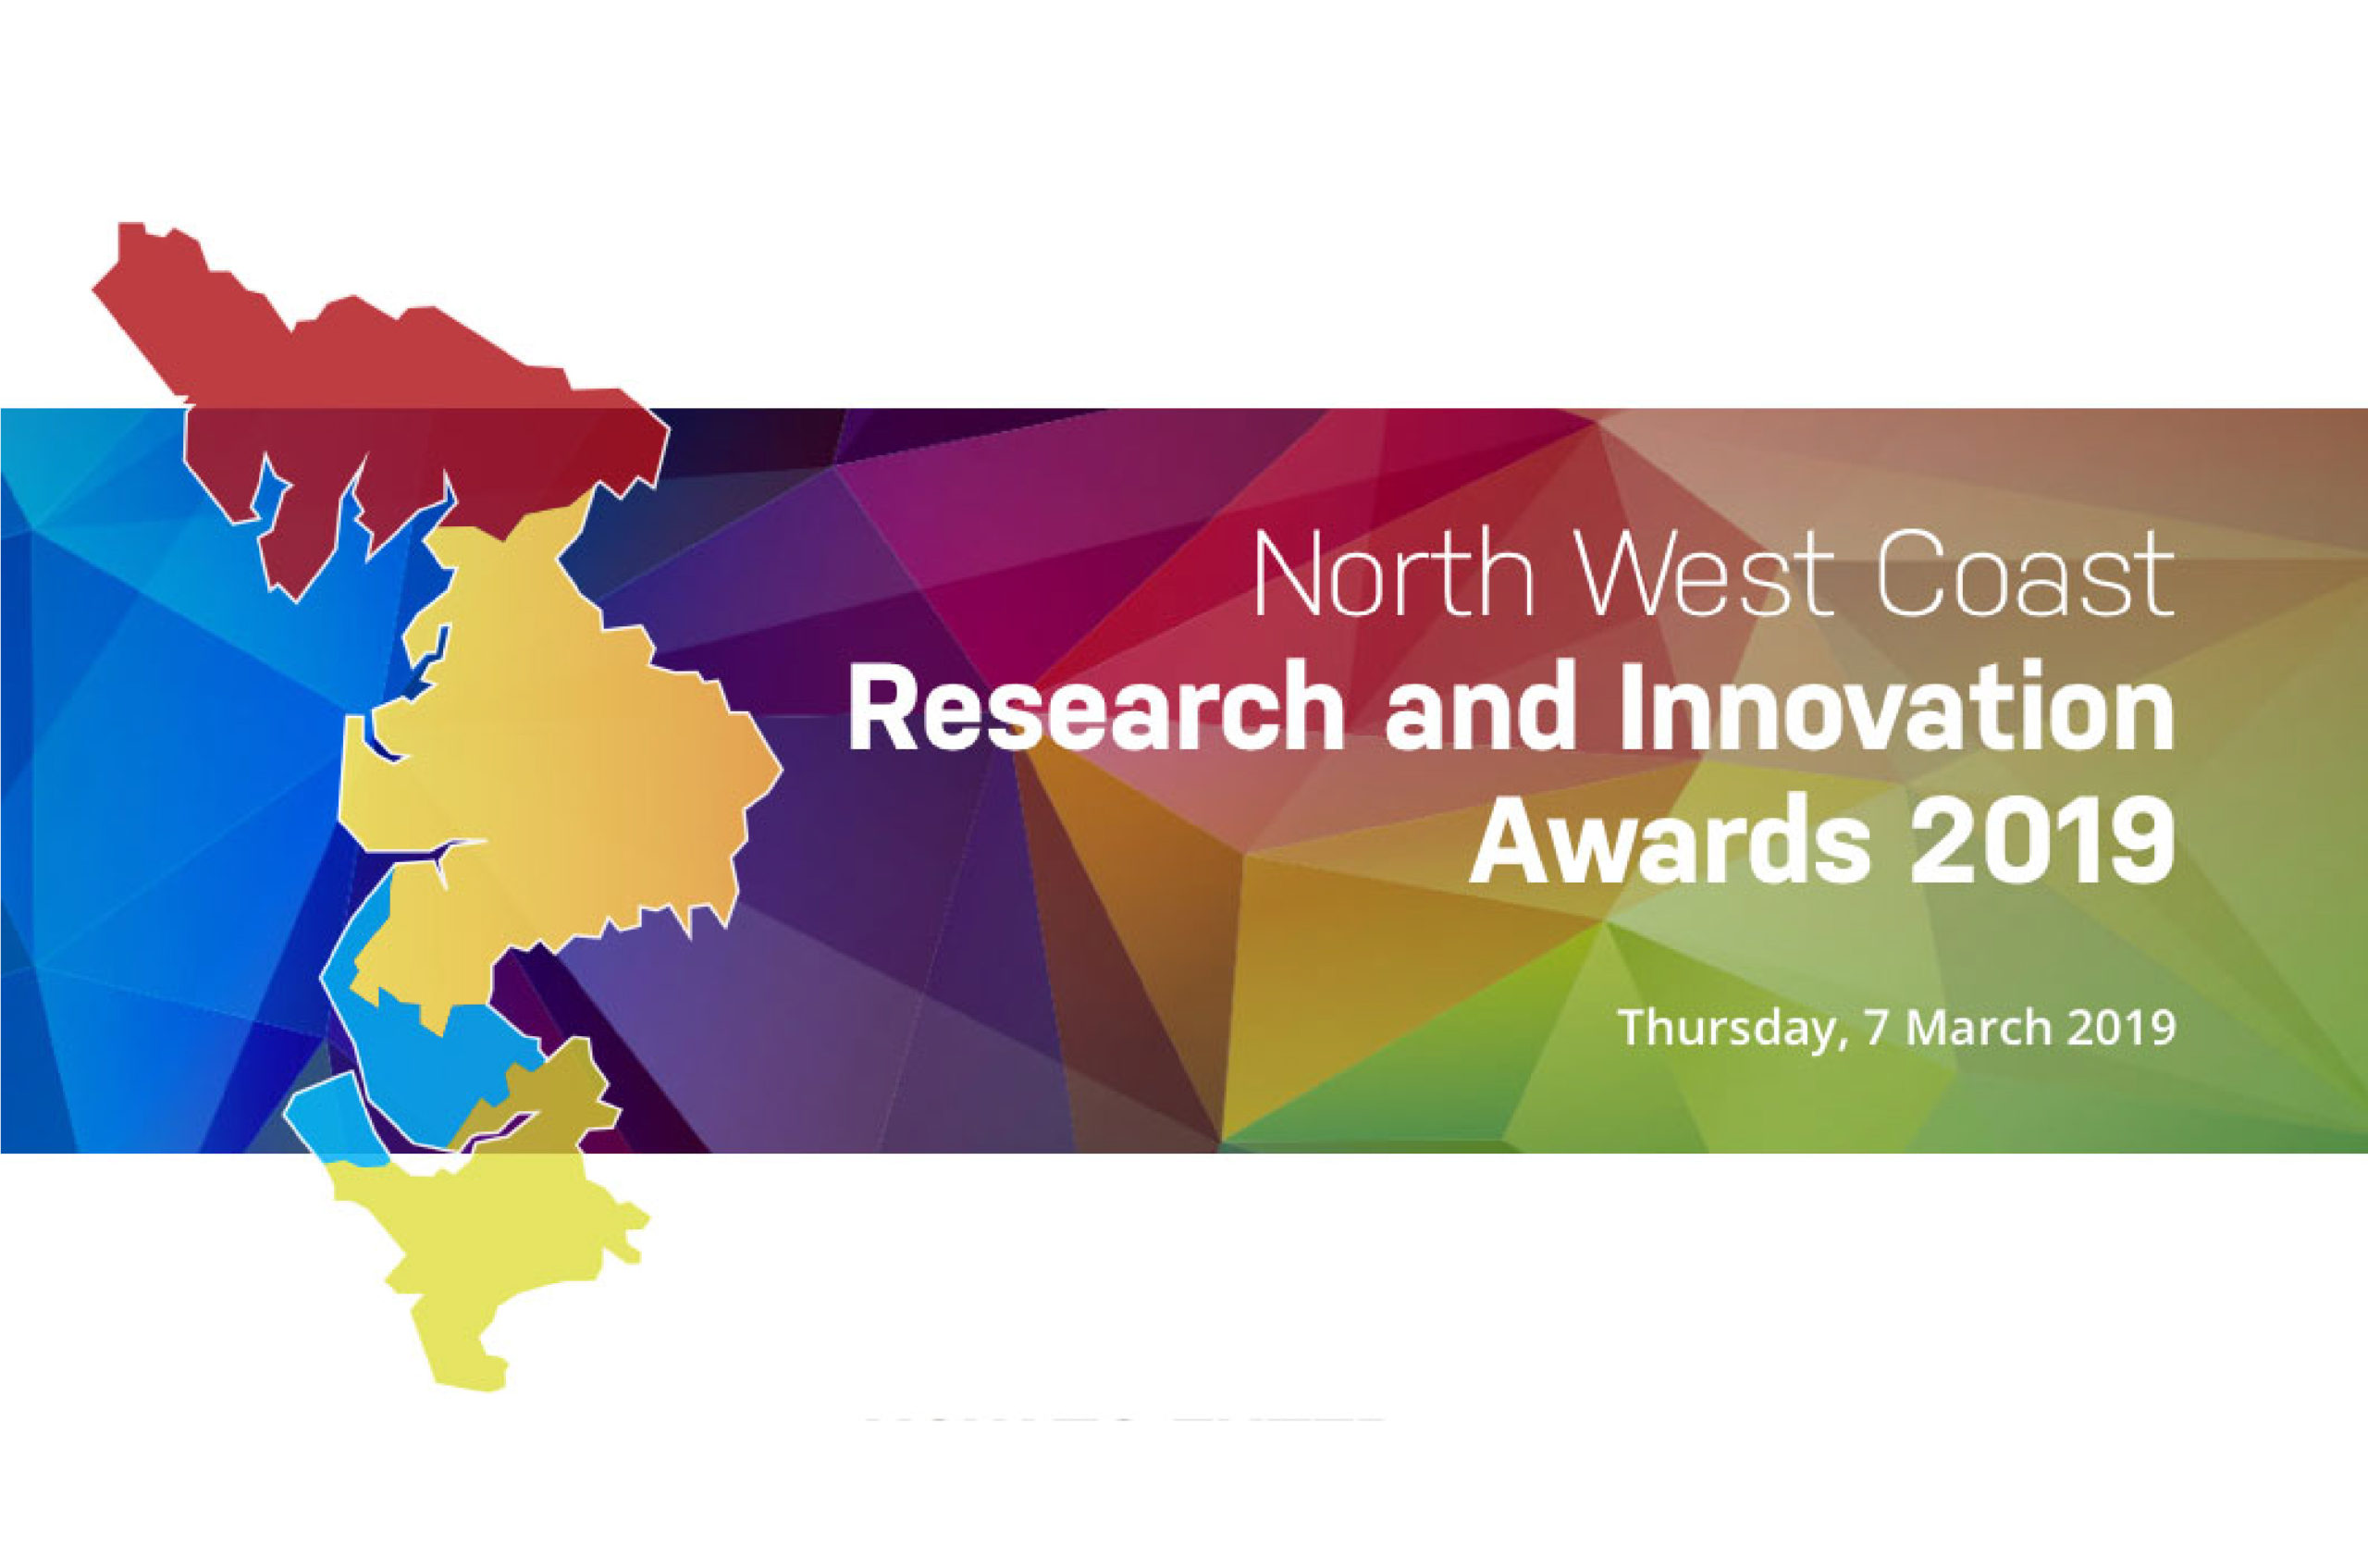 Logo for the North West Coast Research and Innovation Awards which BBI were nominated for in 2019